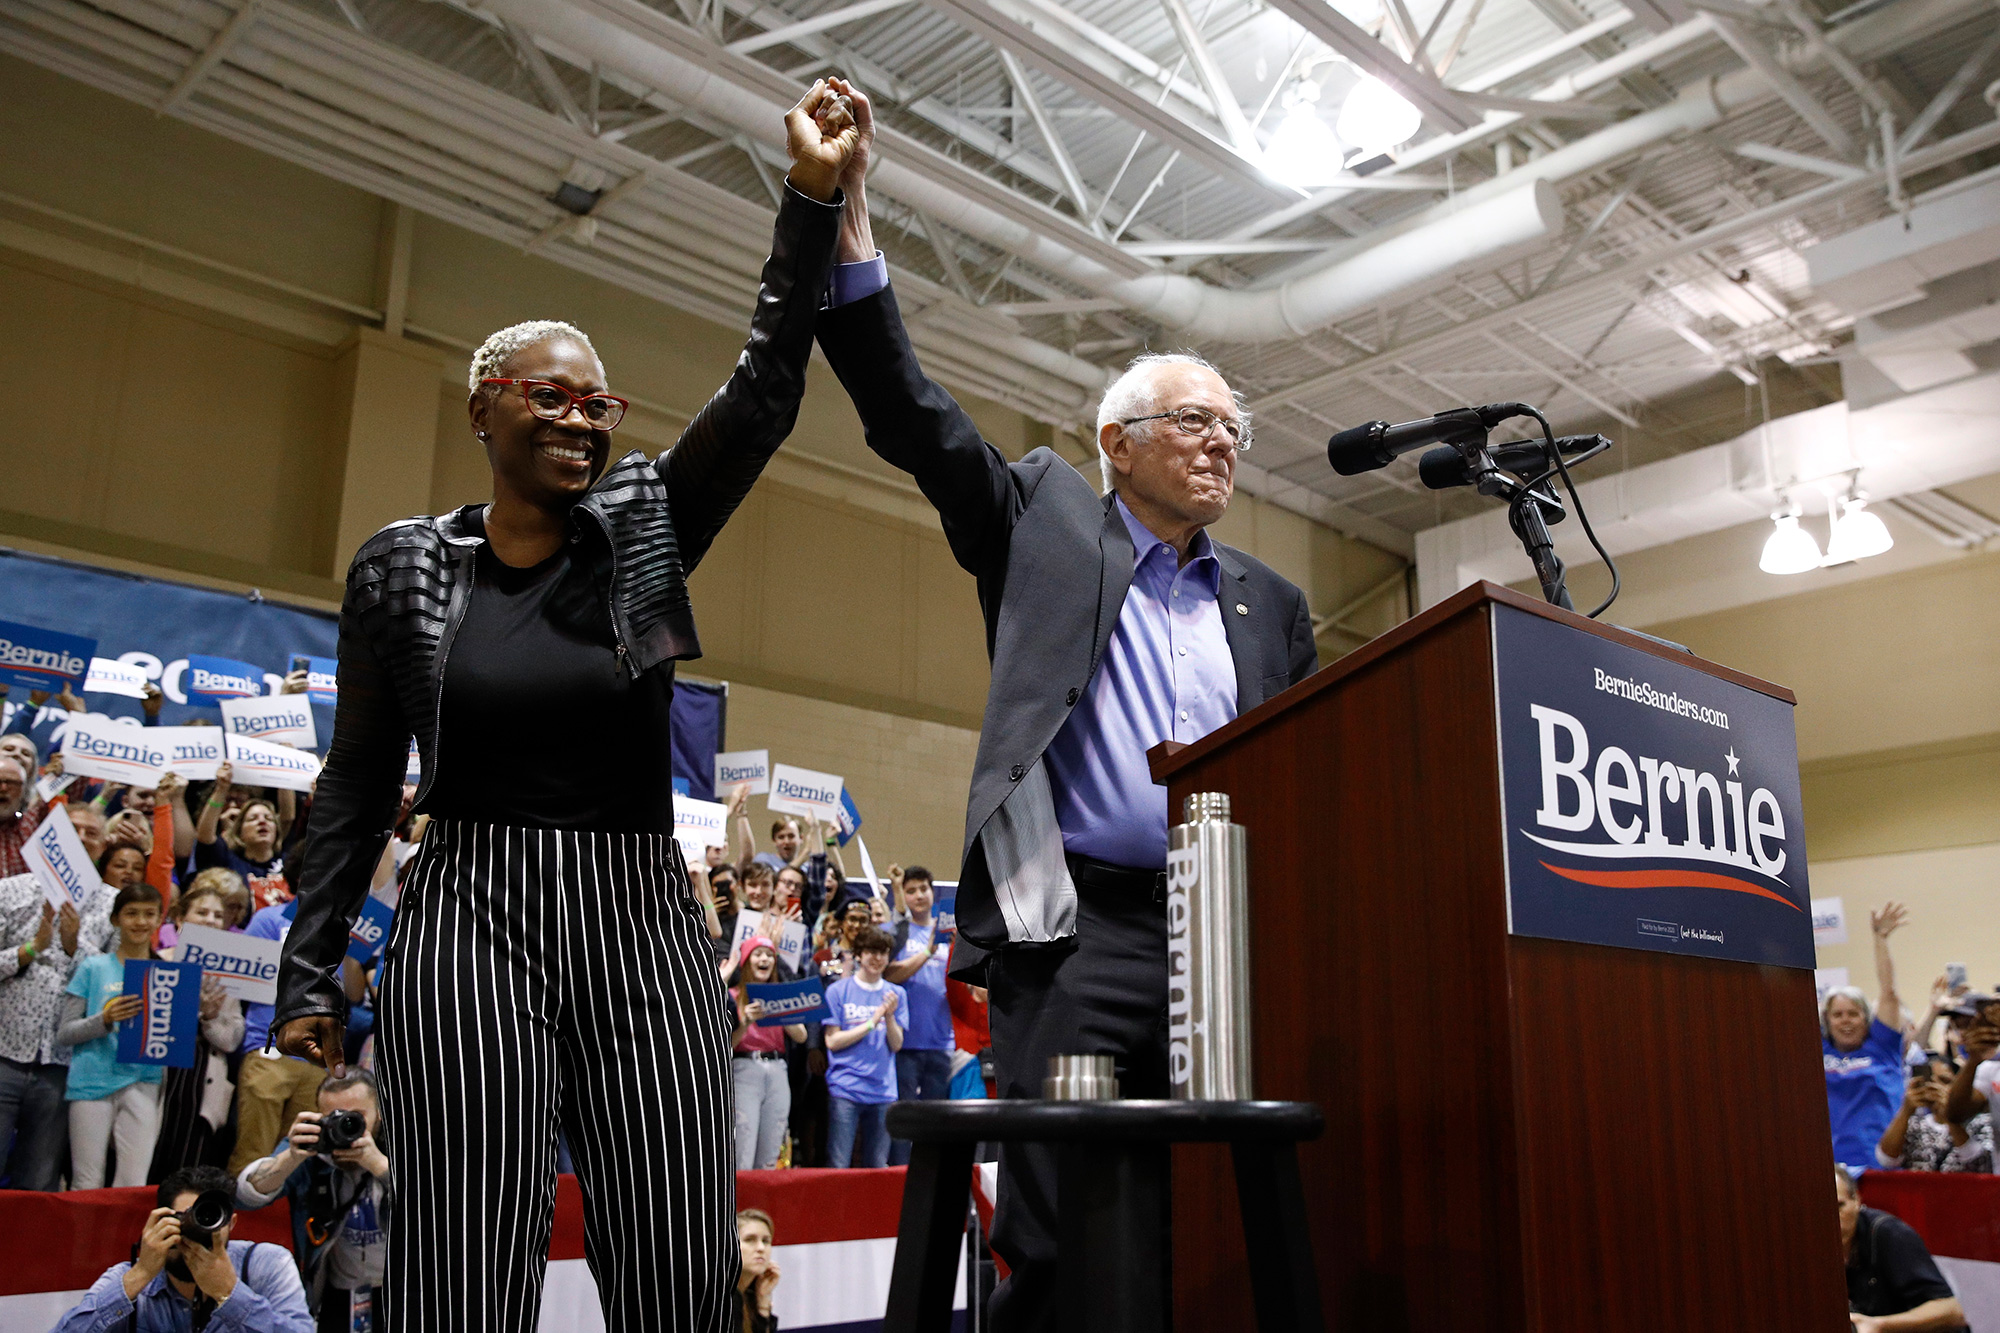 Democratic presidential candidate Sen. Bernie Sanders, right, stands onstage with former Ohio state Sen. Nina Turner before speaking at a campaign event in North Charleston, SC, Feb. 26, 2020.